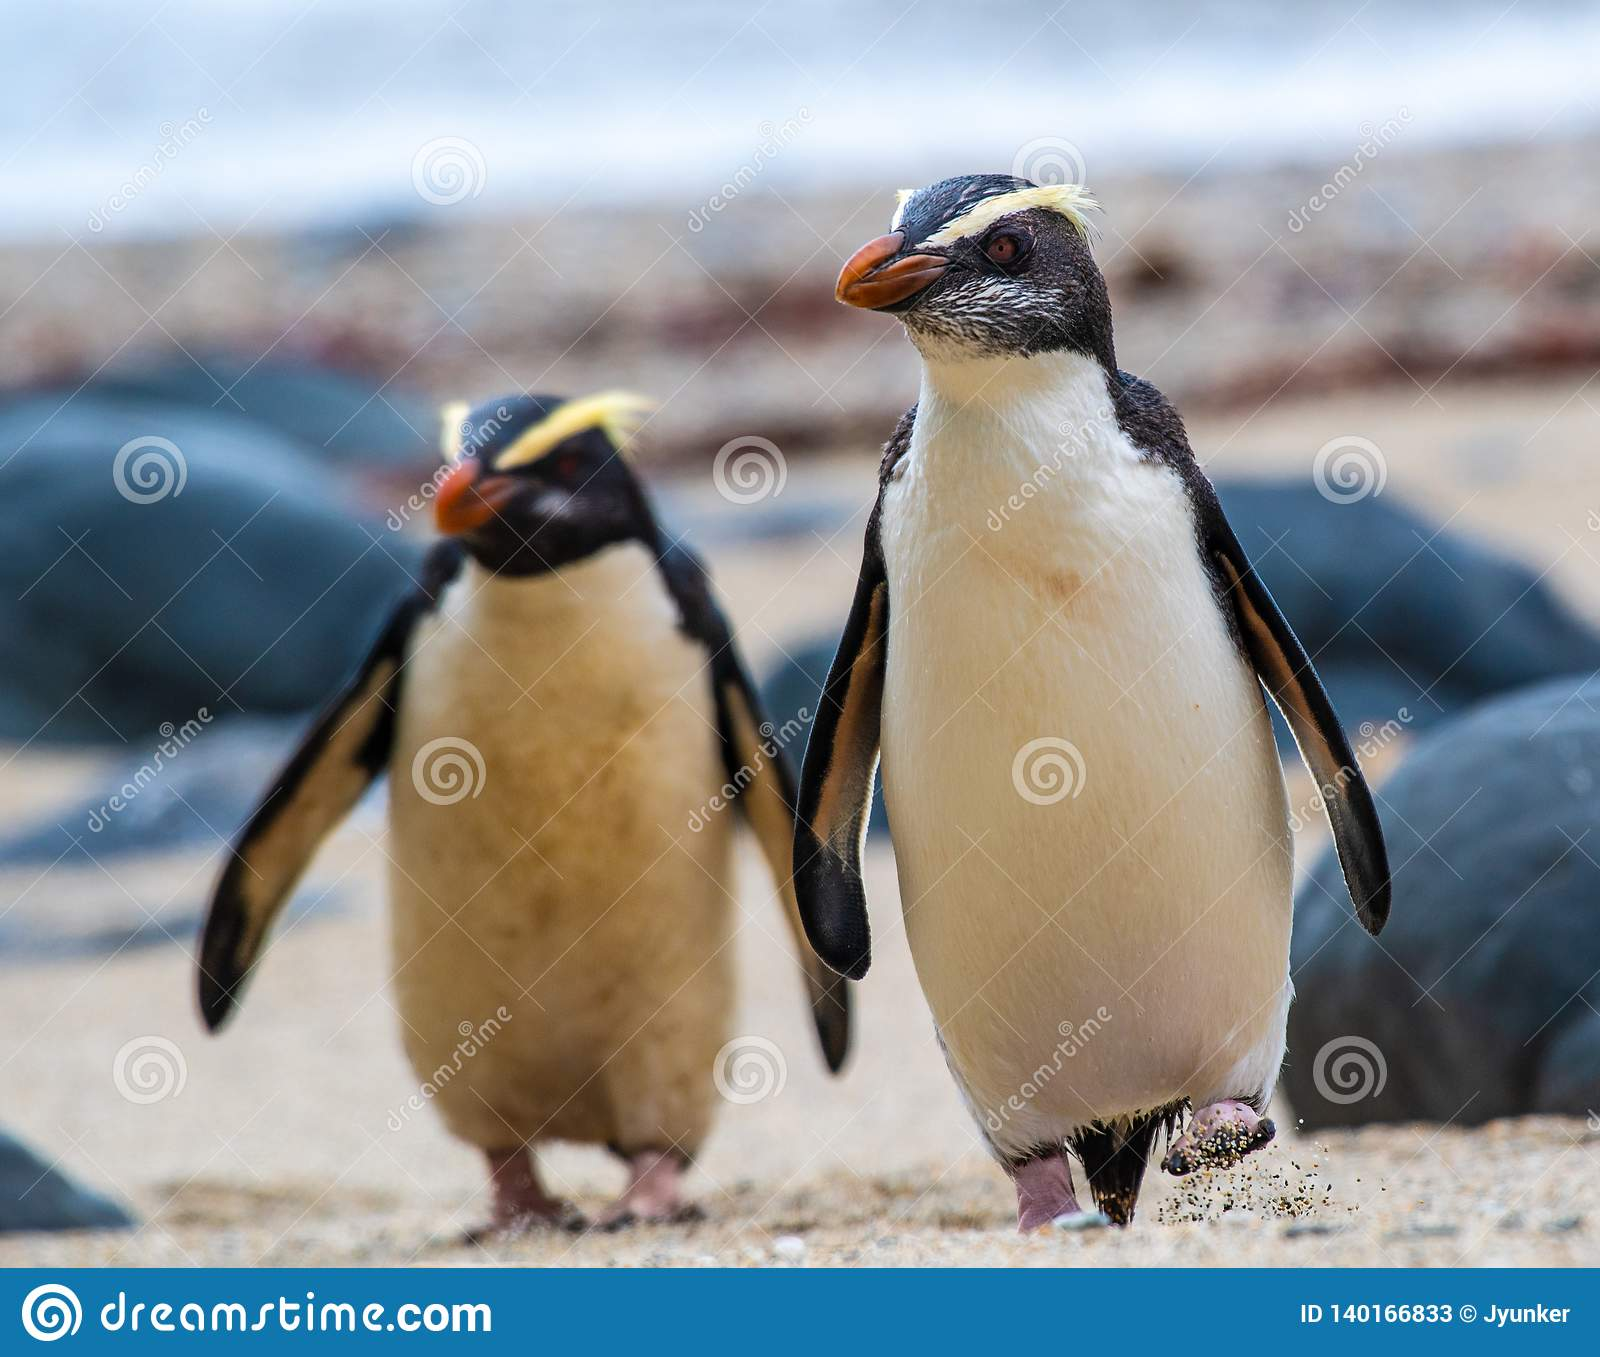 A pair of Fiordland crested penguins on the South Island of New Zealand